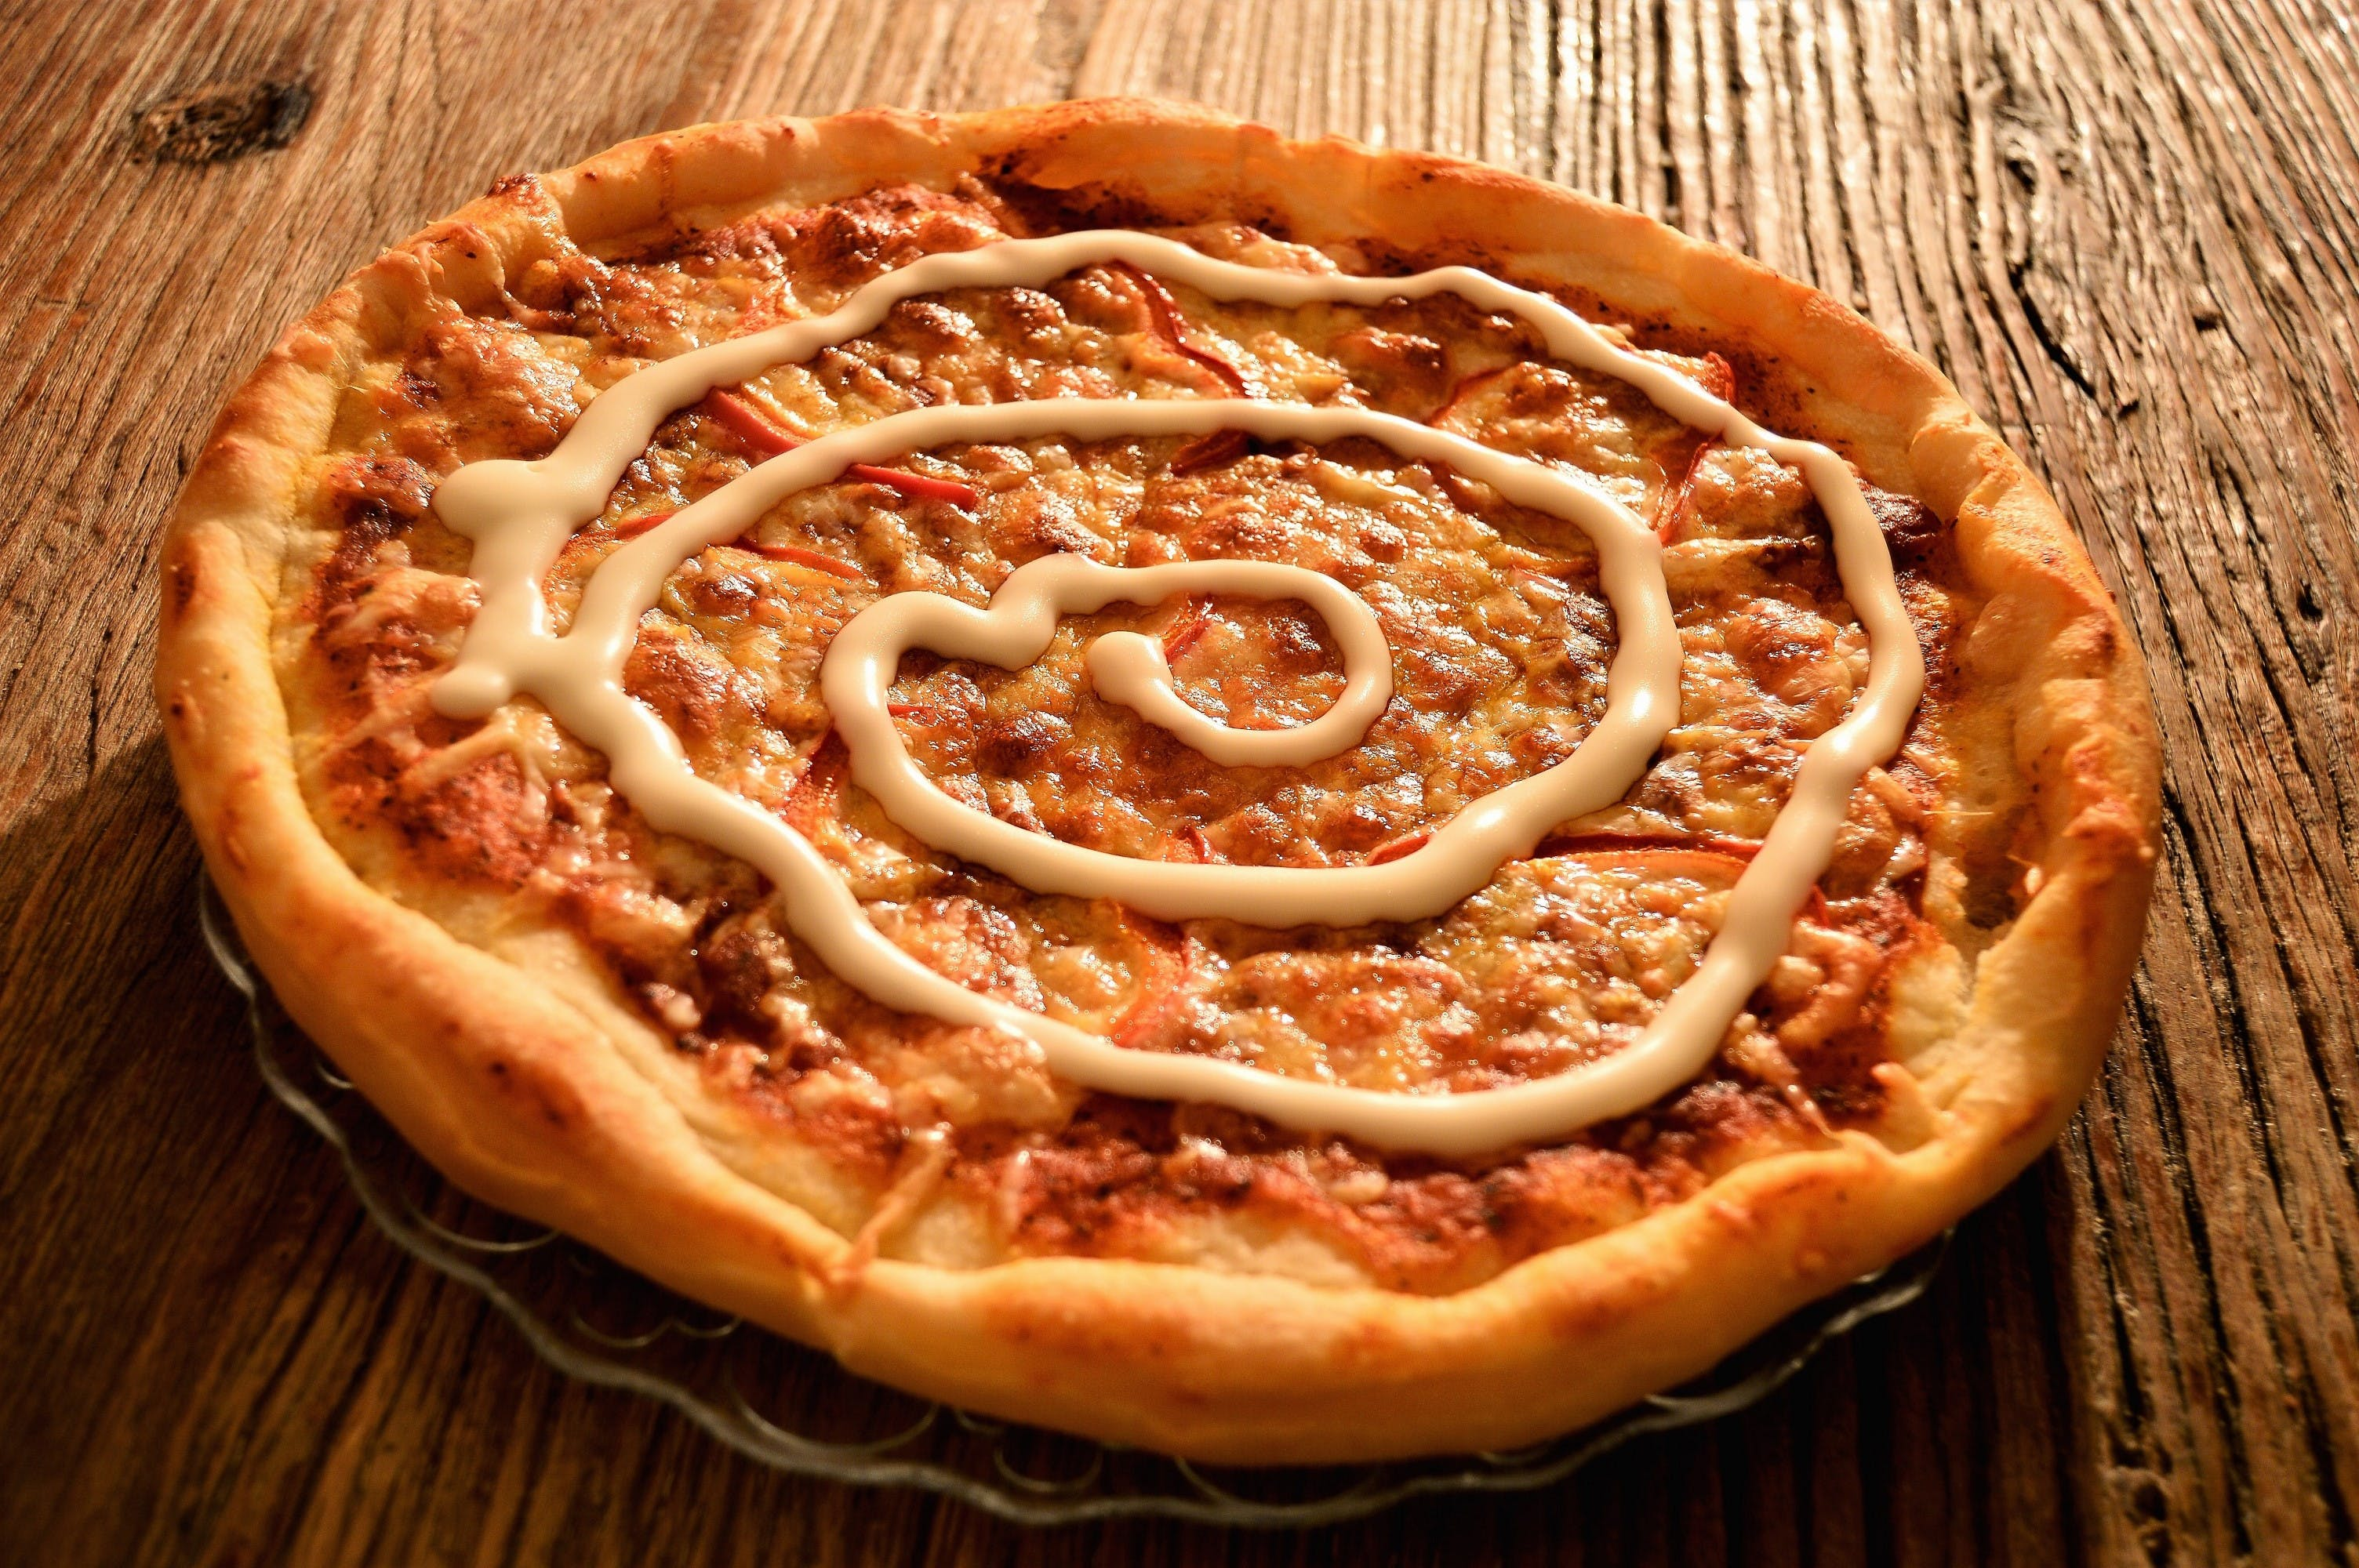 Close-up Photography of Pizza